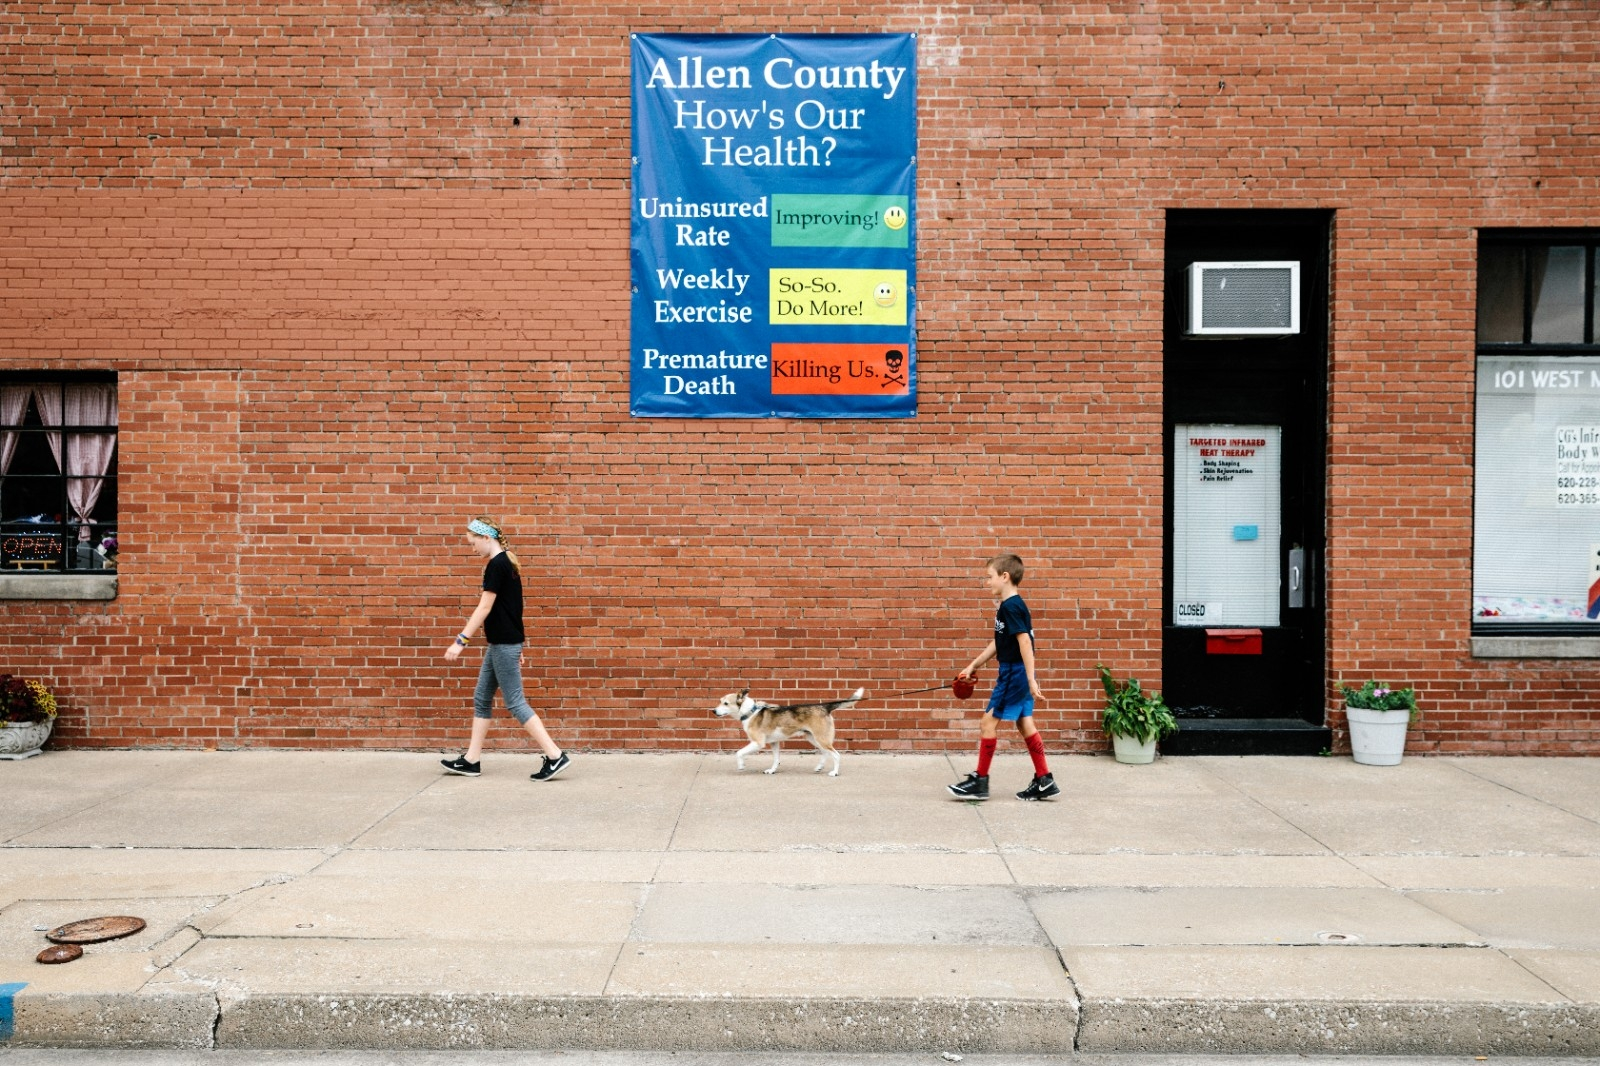 Siblings walk their dog down a city block in downtown Iola, KS.